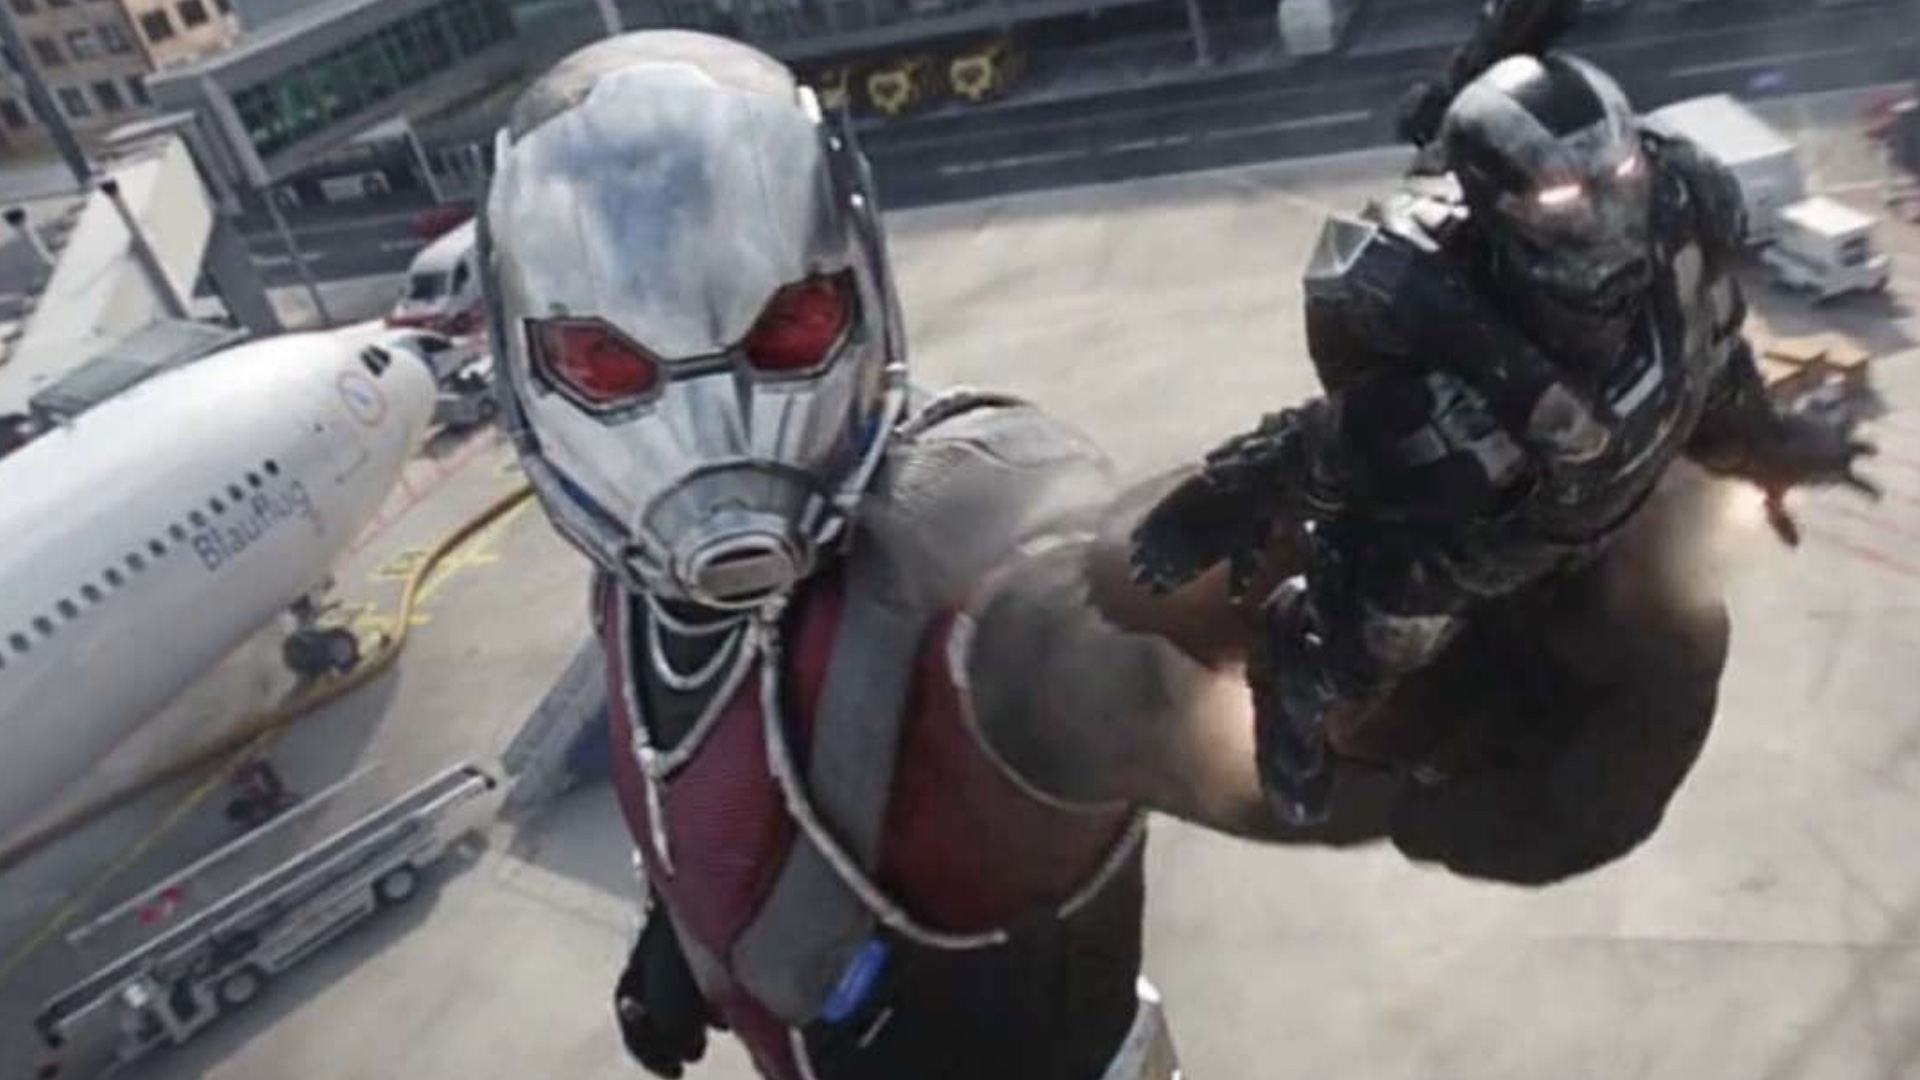 new-details-reveled-for-ant-man-and-the-wasp-reveal-how-civil-war-affected-the-characters-and-story-social.jpg